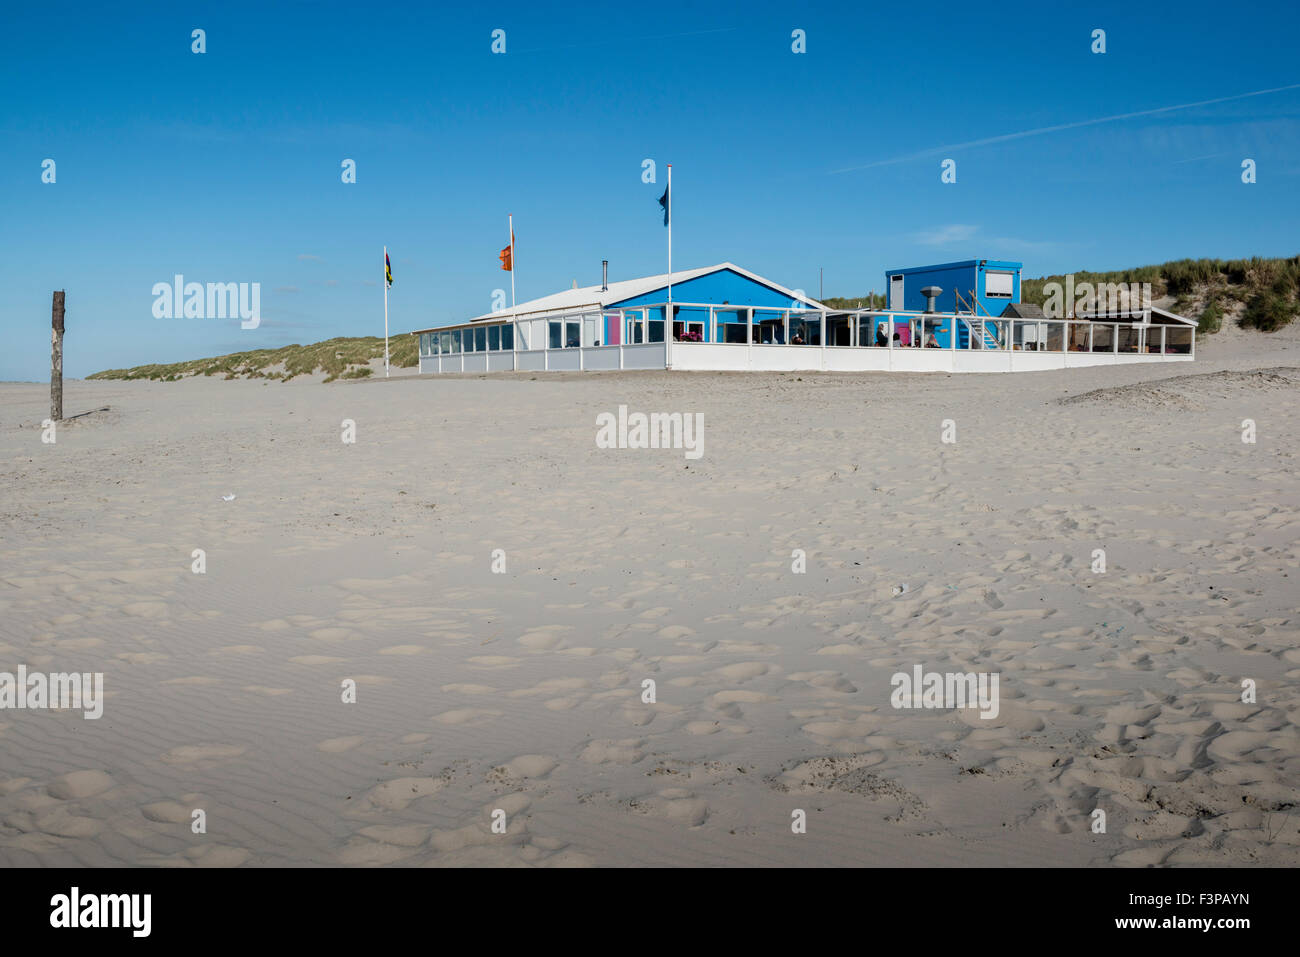 2 July 2014  The beach is very wide at The Zandzee Bar at paal 11 at the Noordzee Beach.  De Zandzeebar bij Paal - Stock Image